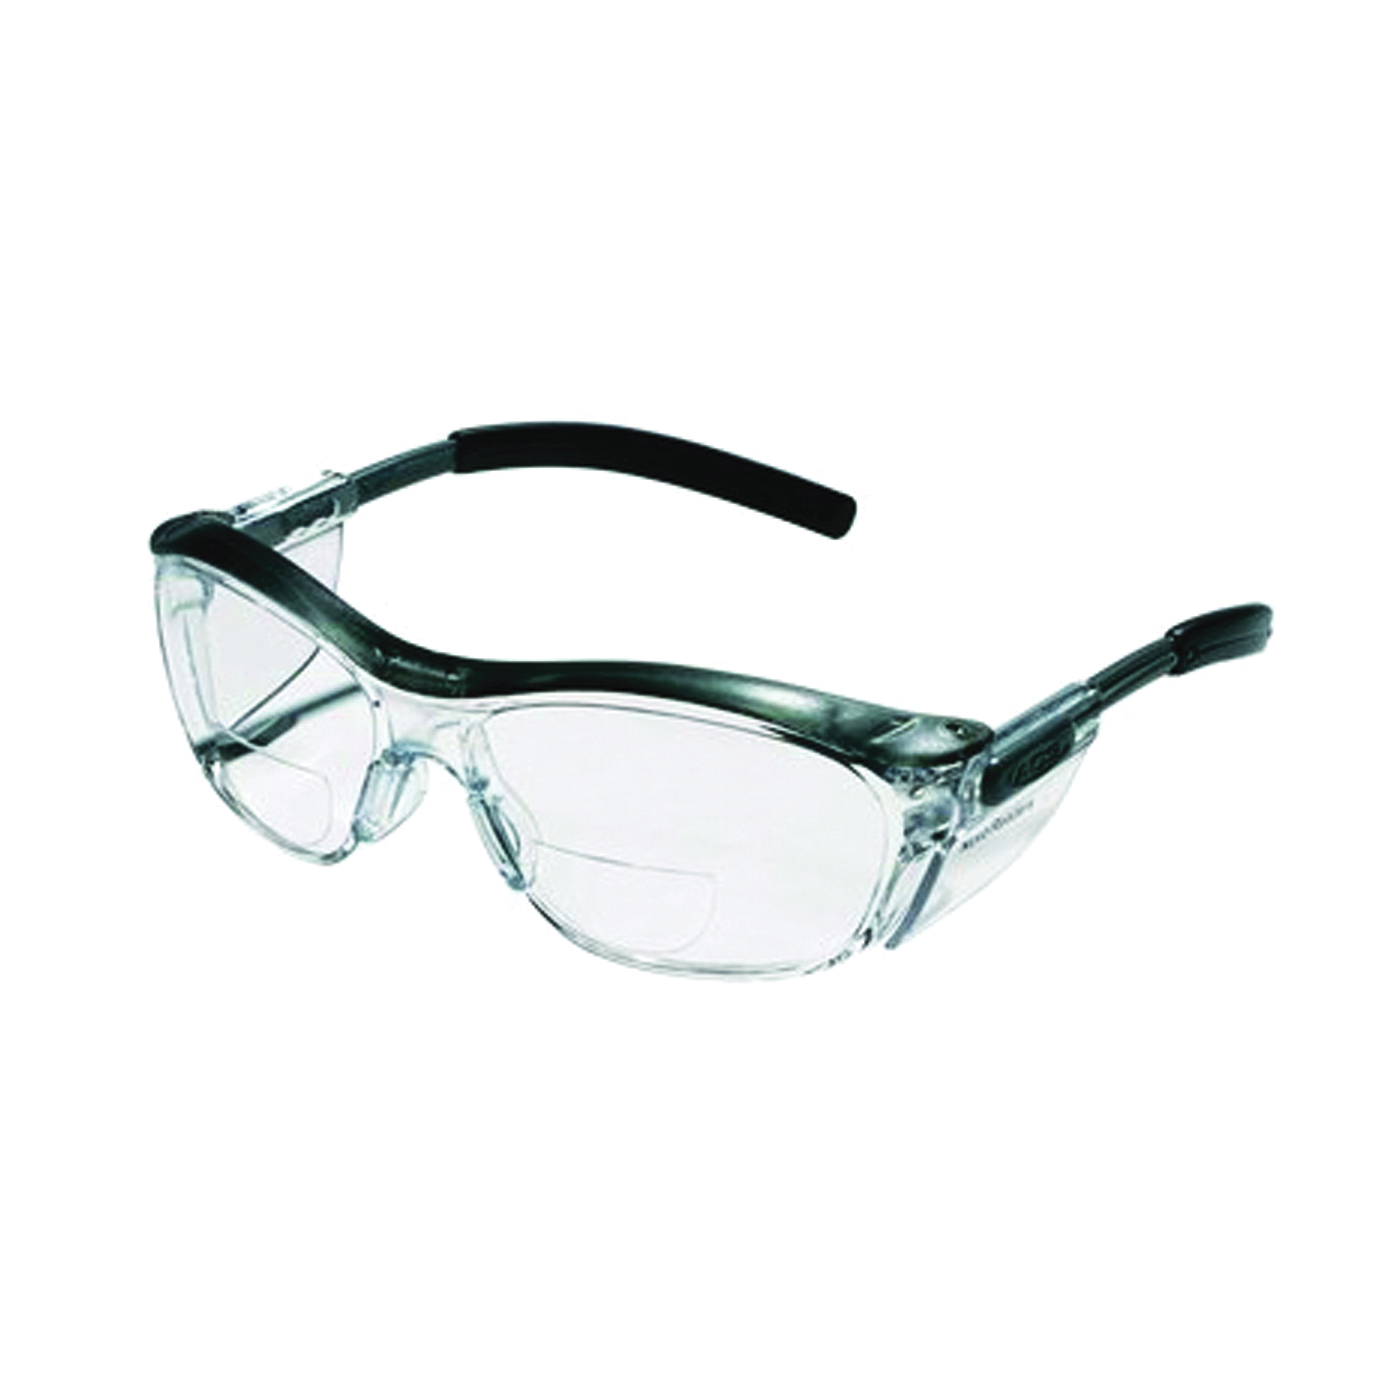 Picture of 3M 91193-00002T Safety Eyewear, Anti-Fog Lens